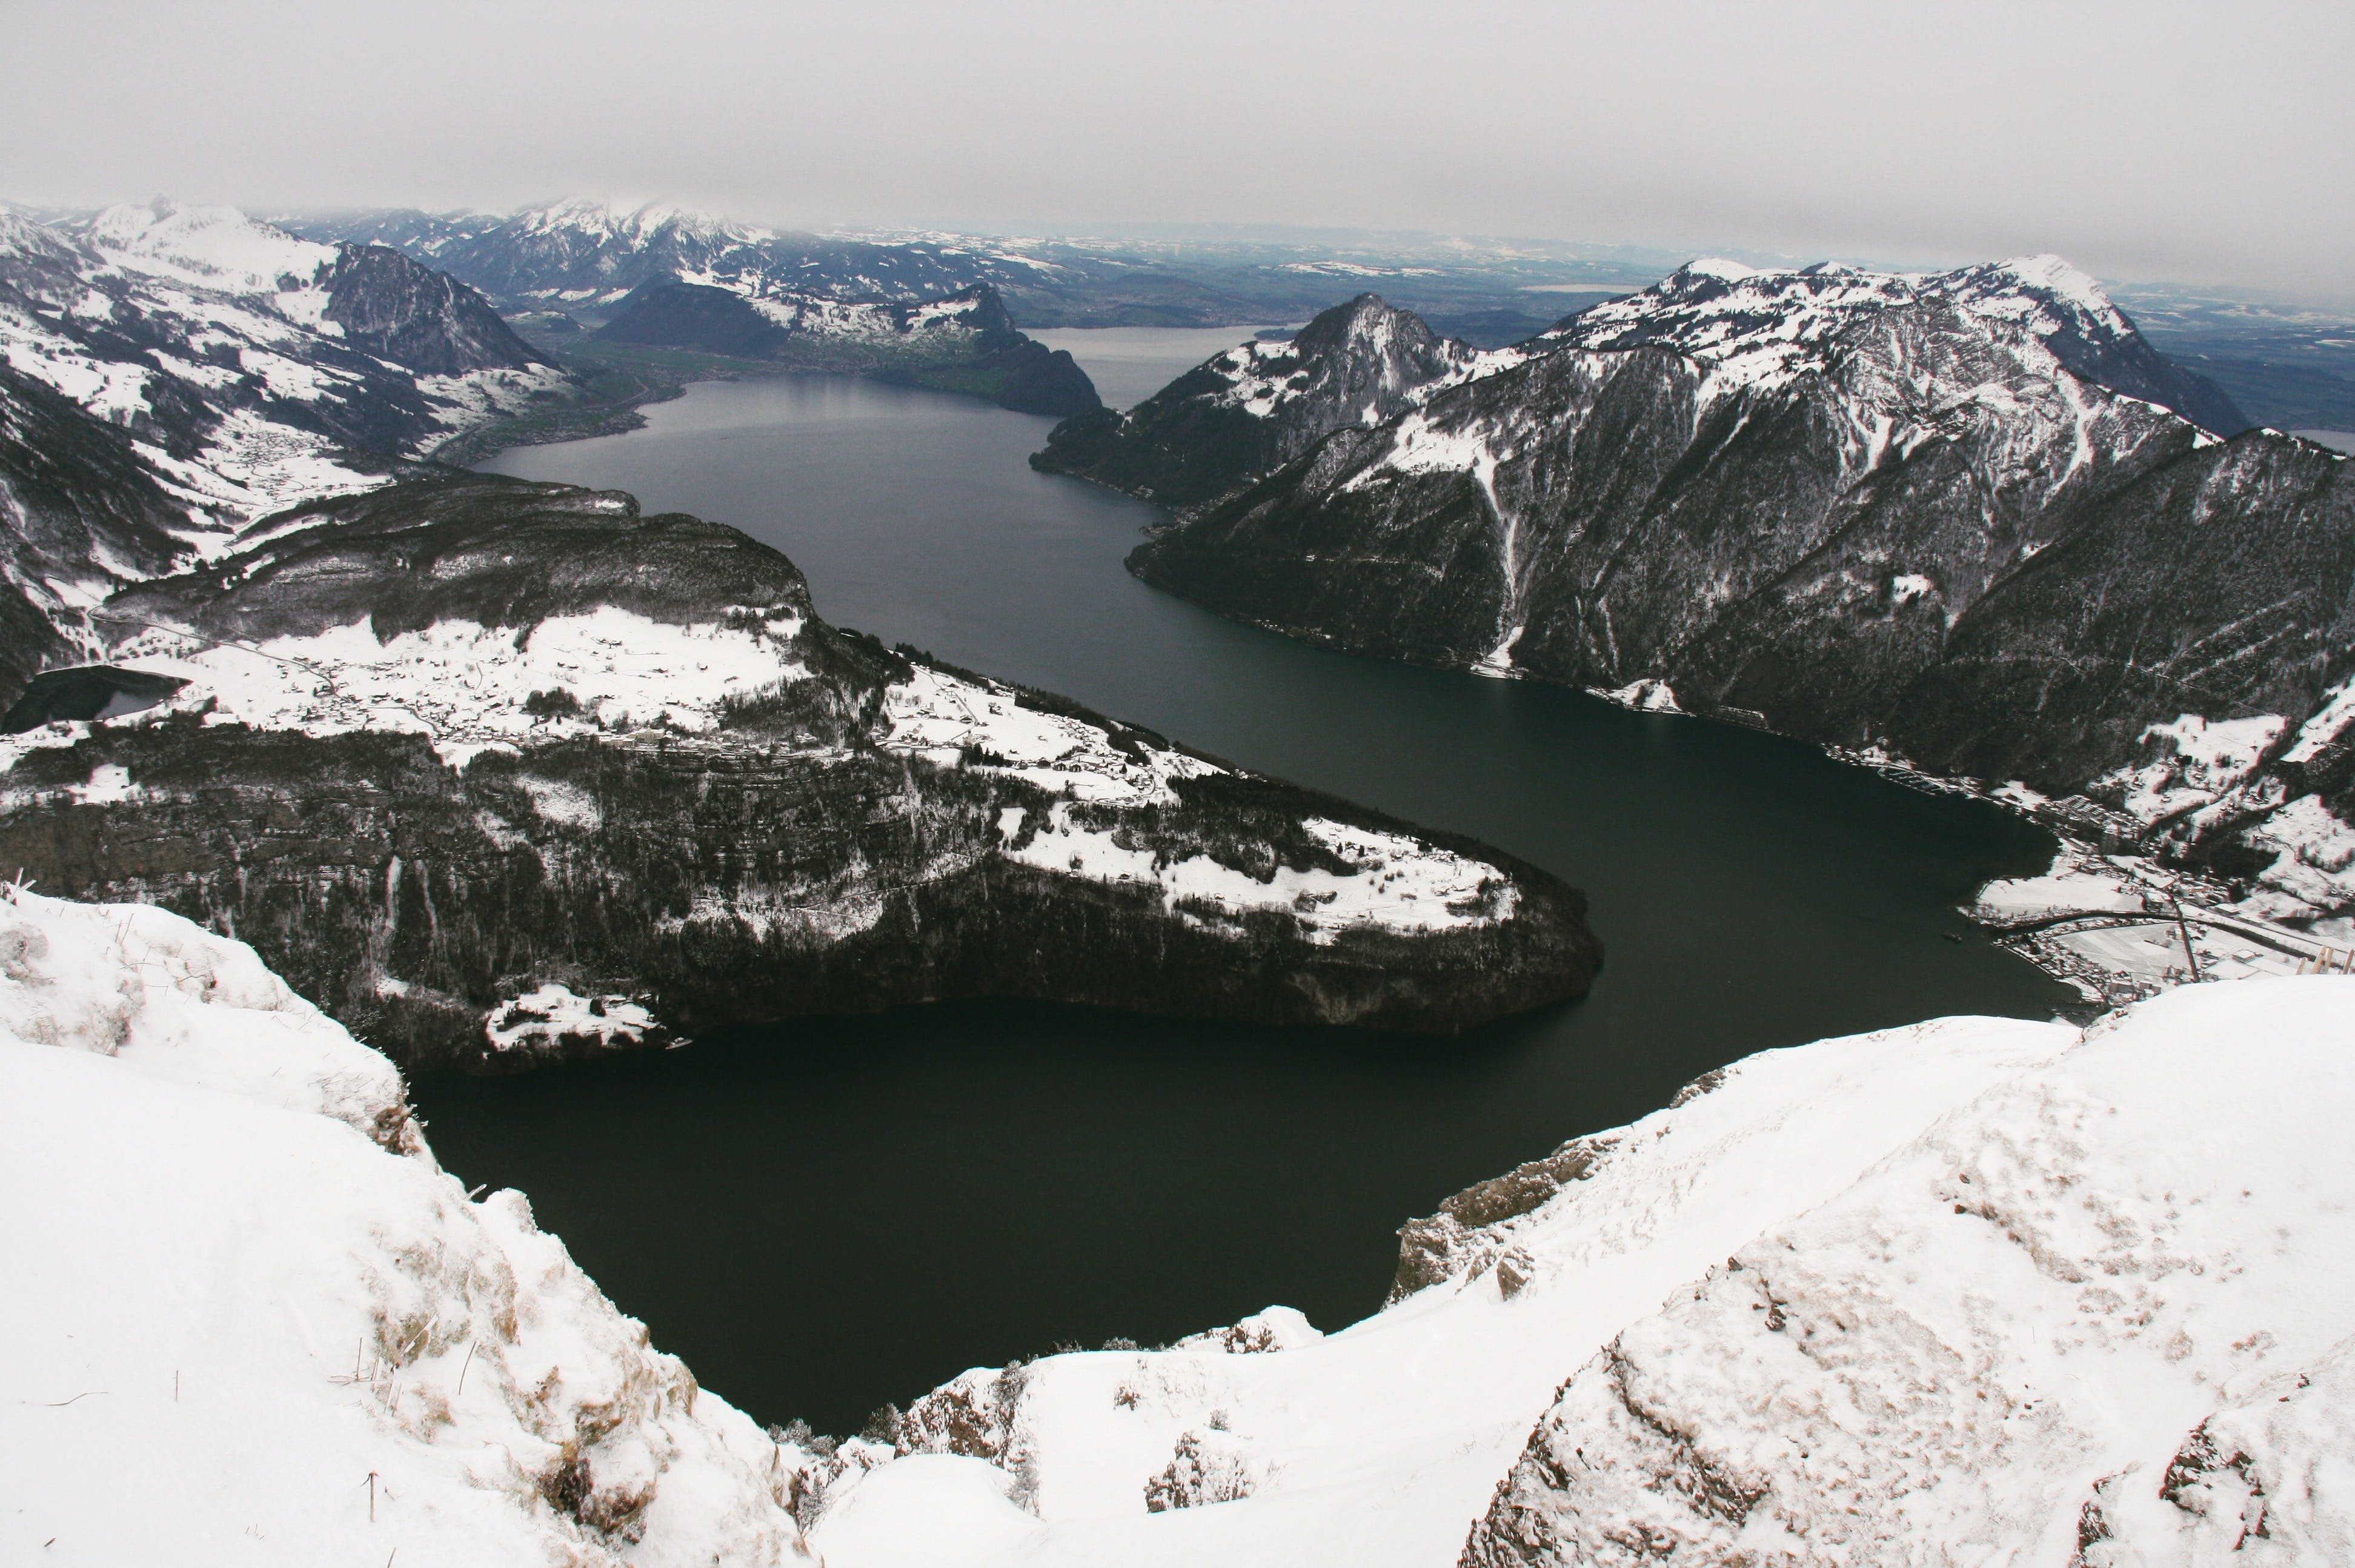 Islands With Snow Near Body of Water